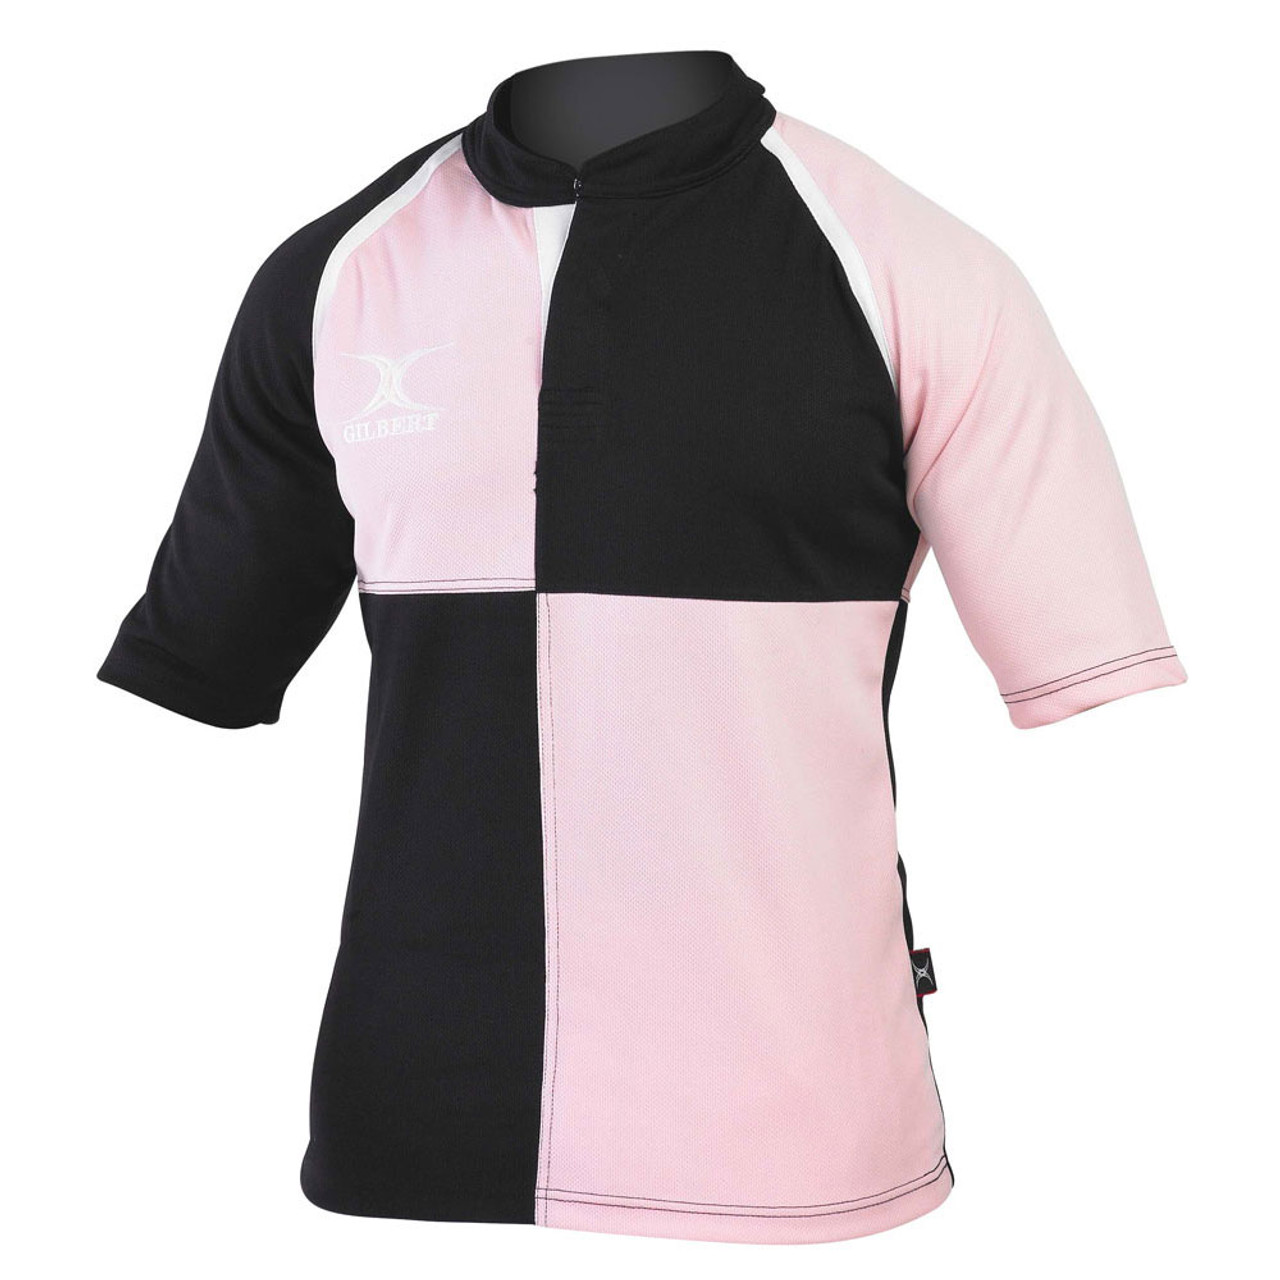 7f695042d94 Black And White Quartered Rugby Shirts - DREAMWORKS